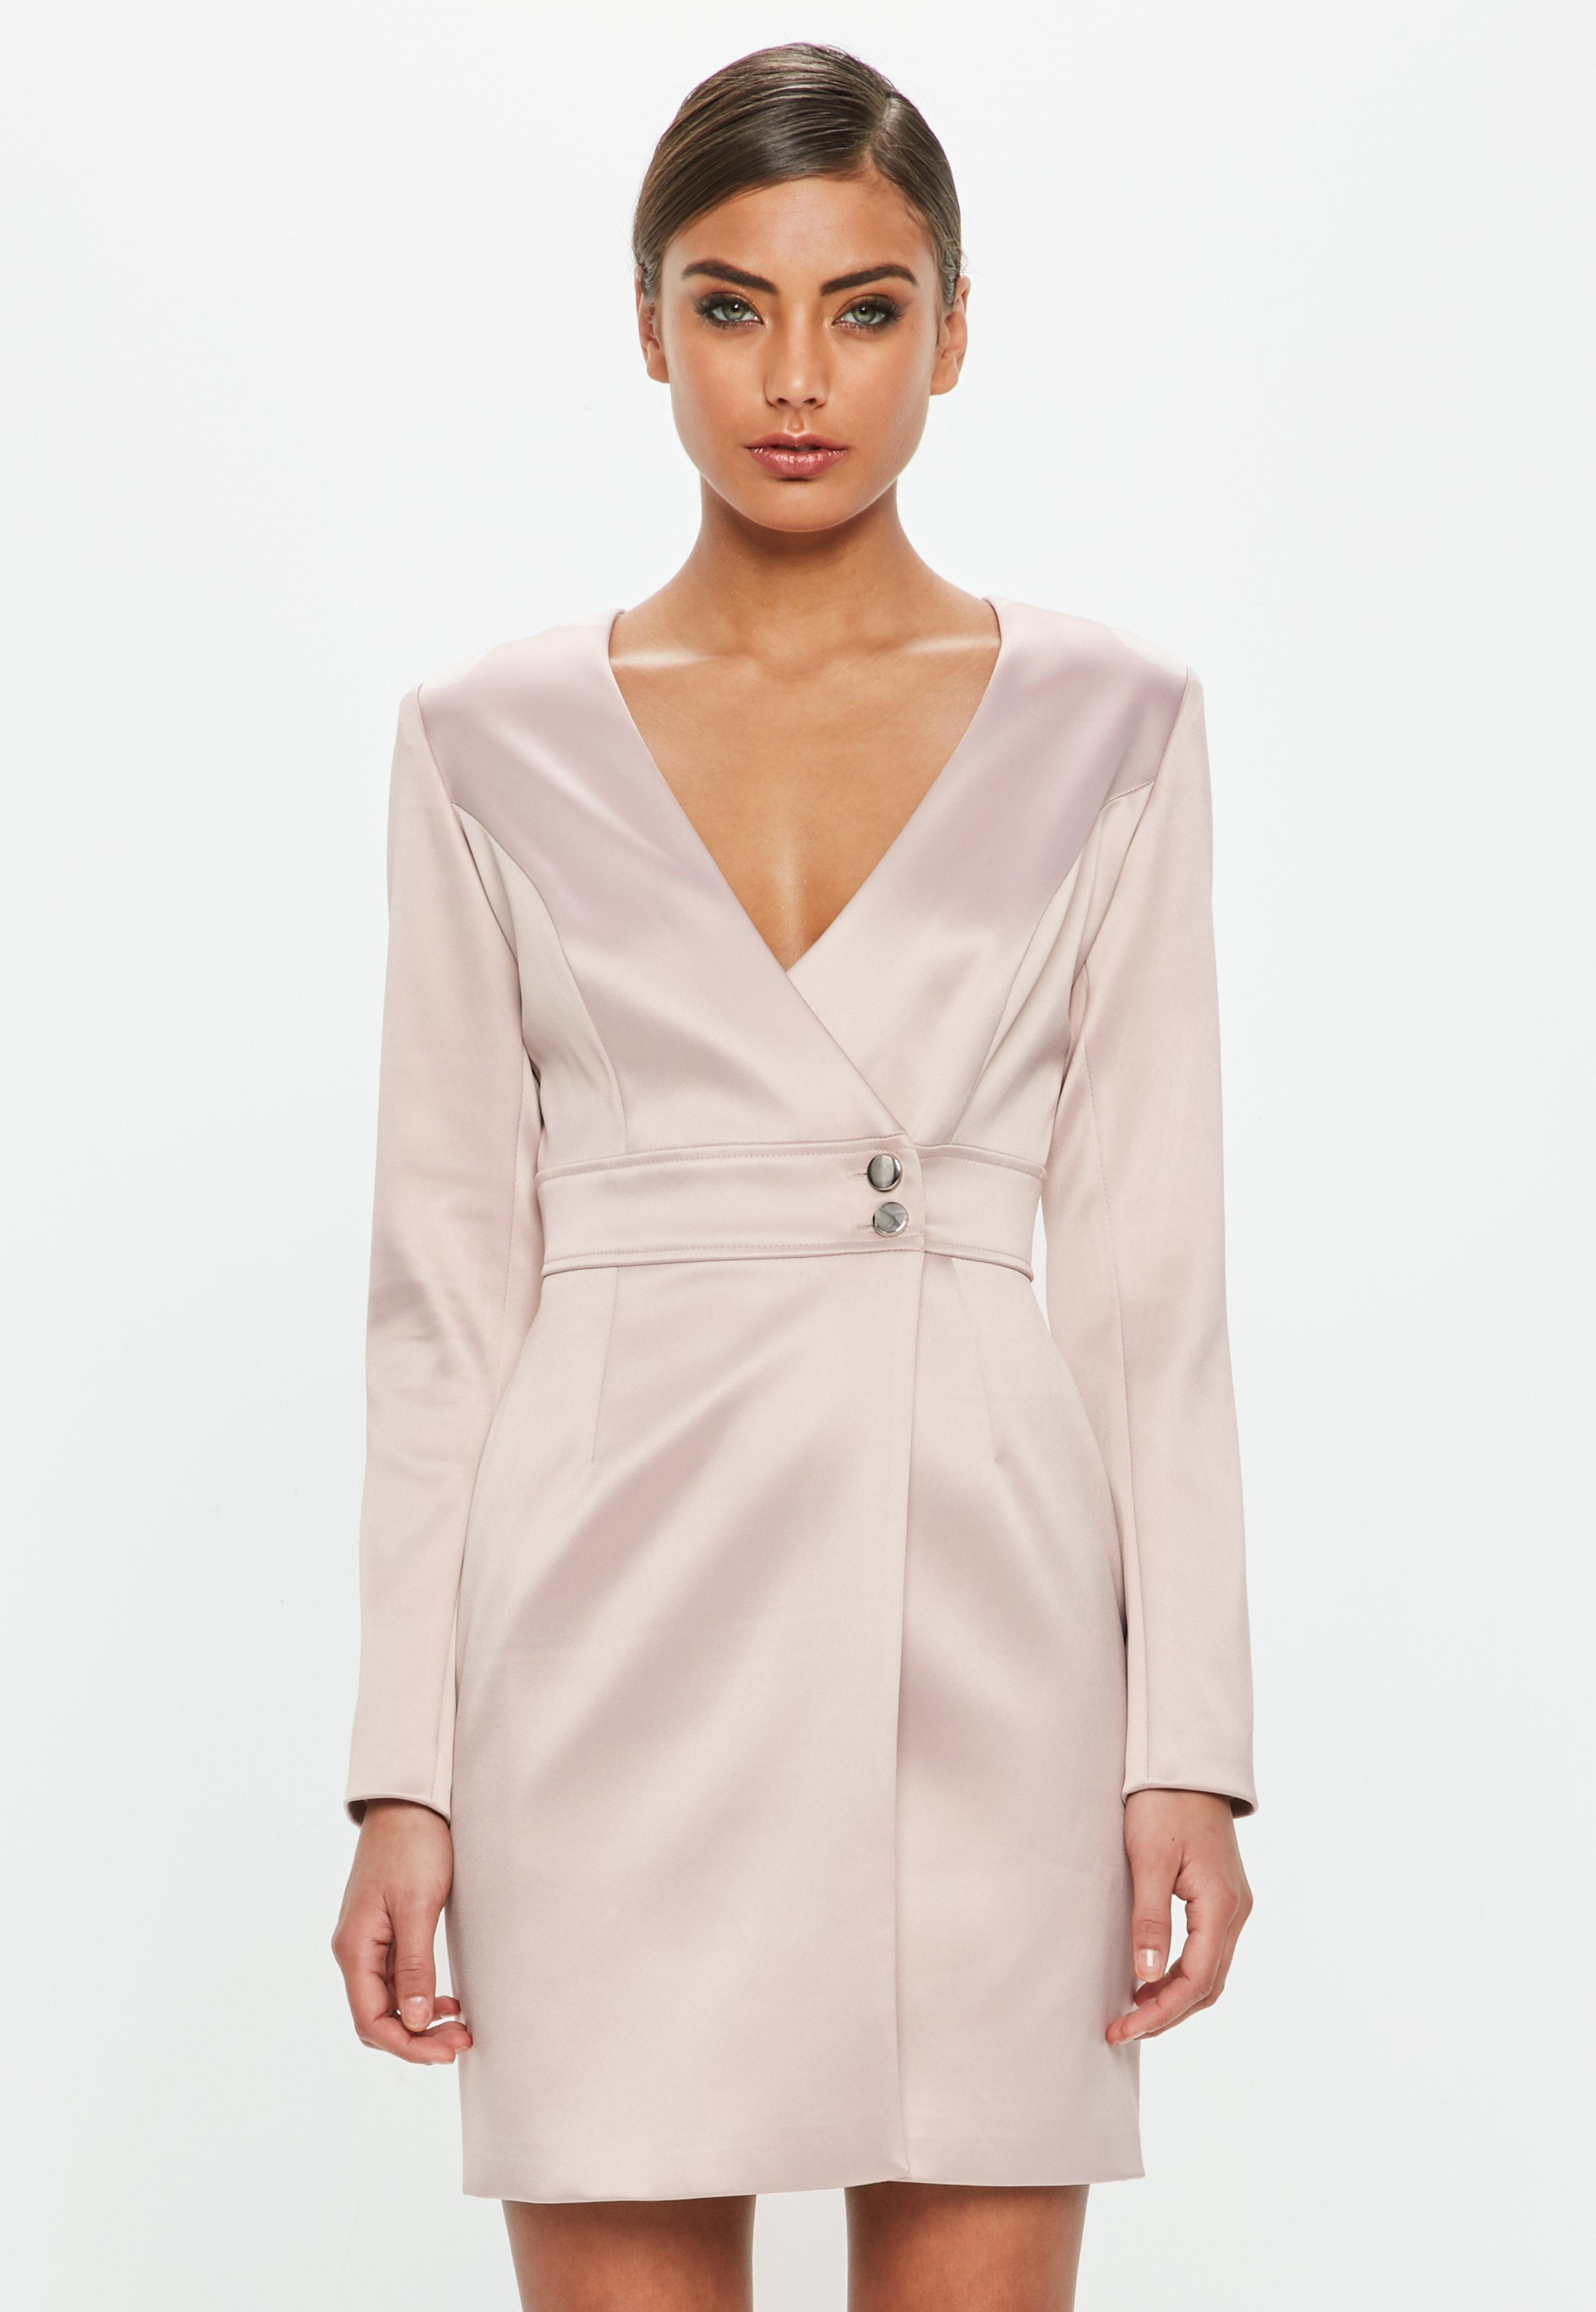 4803c385dca Missguided Peace + Love Pink Satin Tailored Wrap Dress in Pink - Lyst